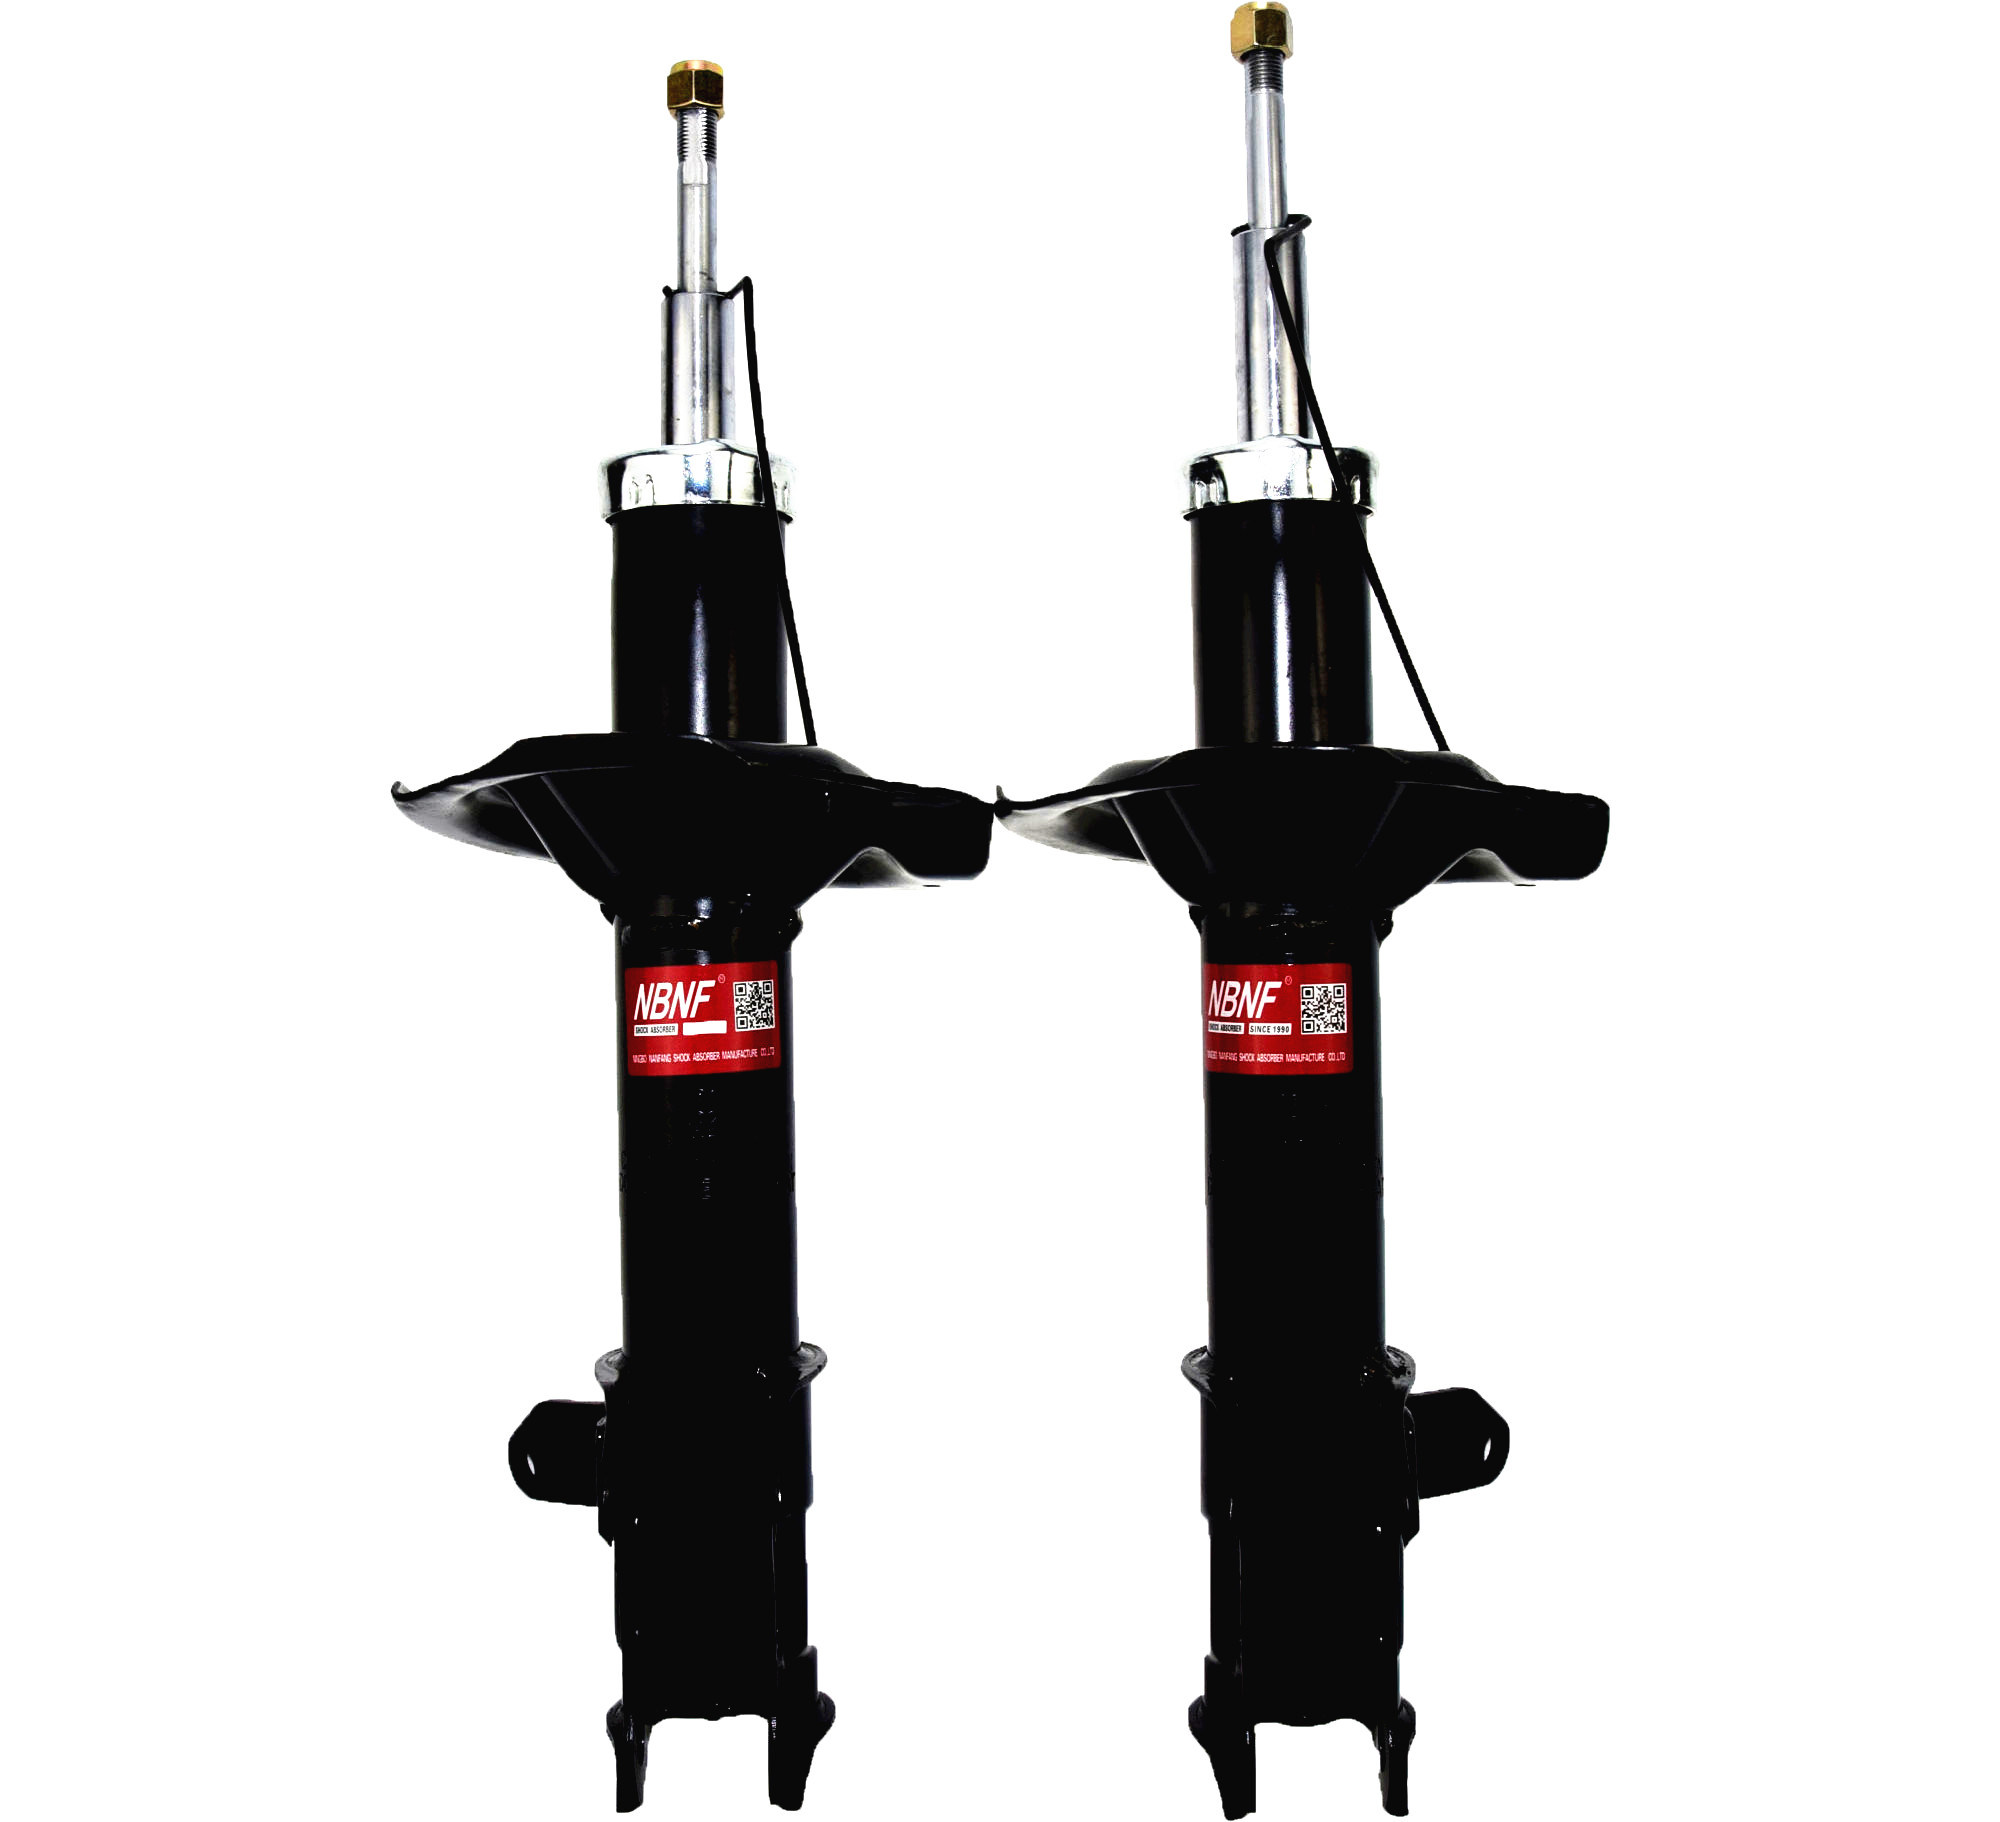 High Quality Shock Absorber for Mazda Protege 03-99 All Shock Absorber 333276 and OE Bj3d28700b, Bj3d28700d